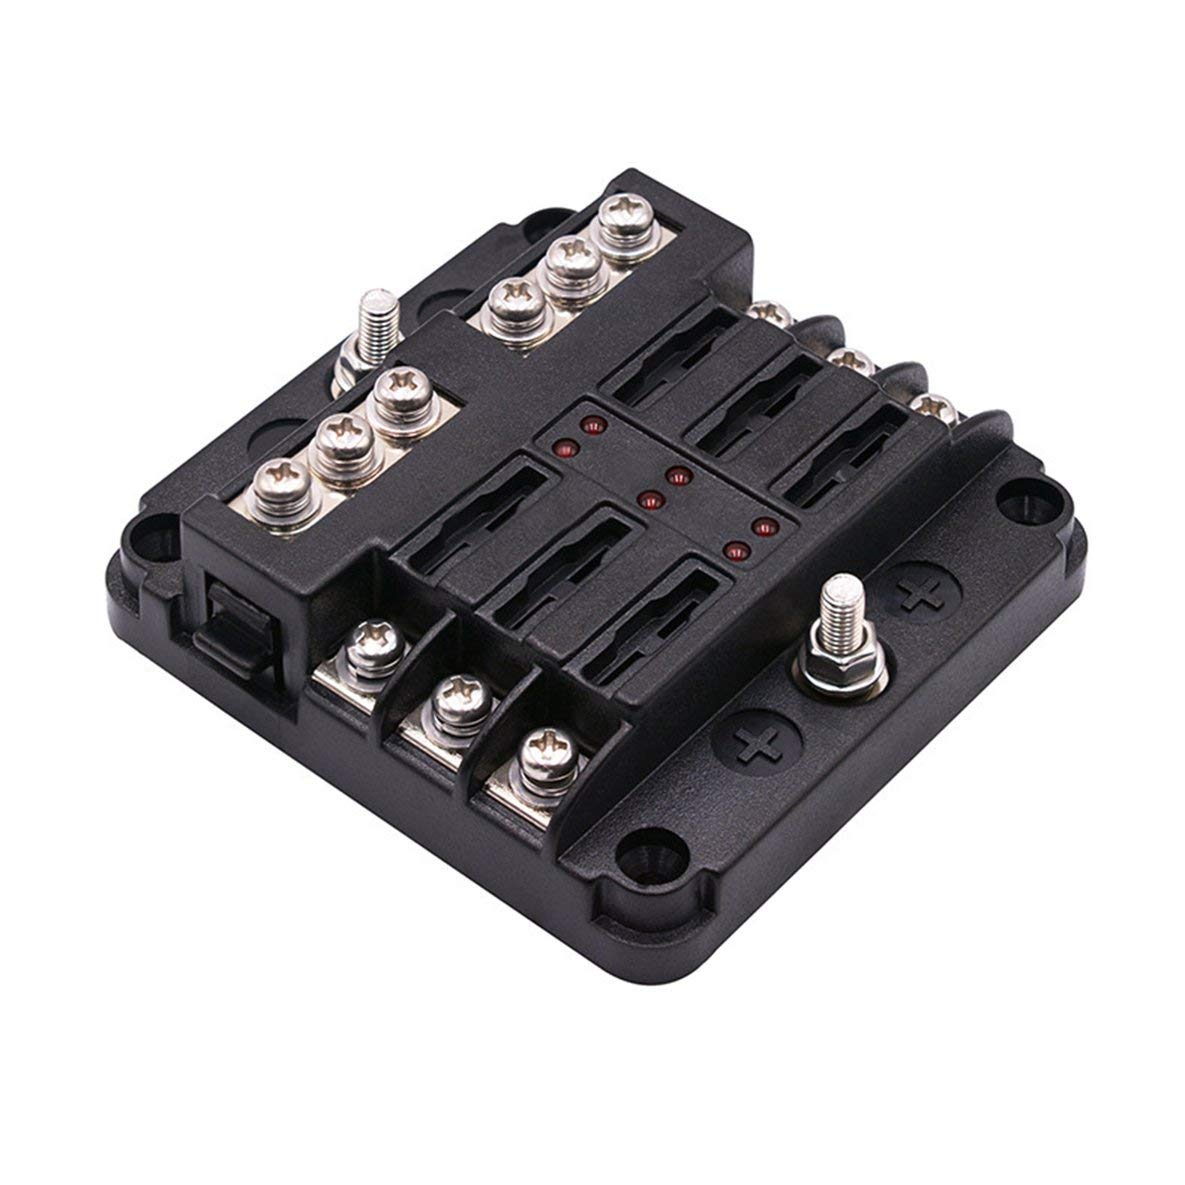 Noradtjcca Car Multi-Way Fuse Box Power Plug-In Fuse Box With Led Indicator 1 Input And 6 Output Independent Positive And Negative